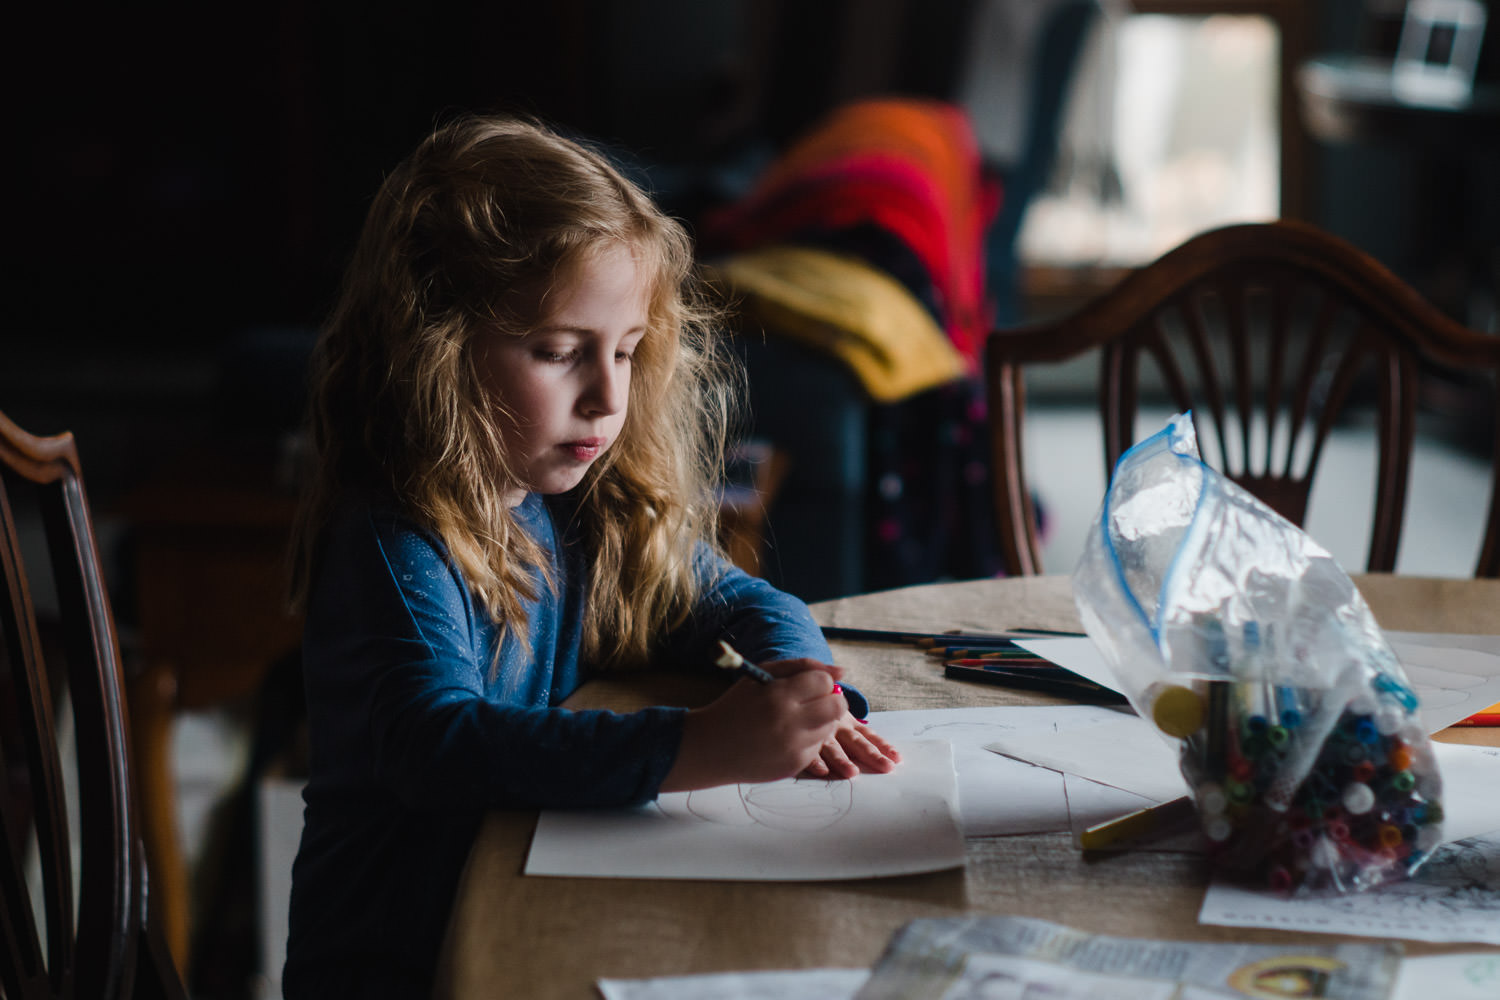 A little girl draws at a table.